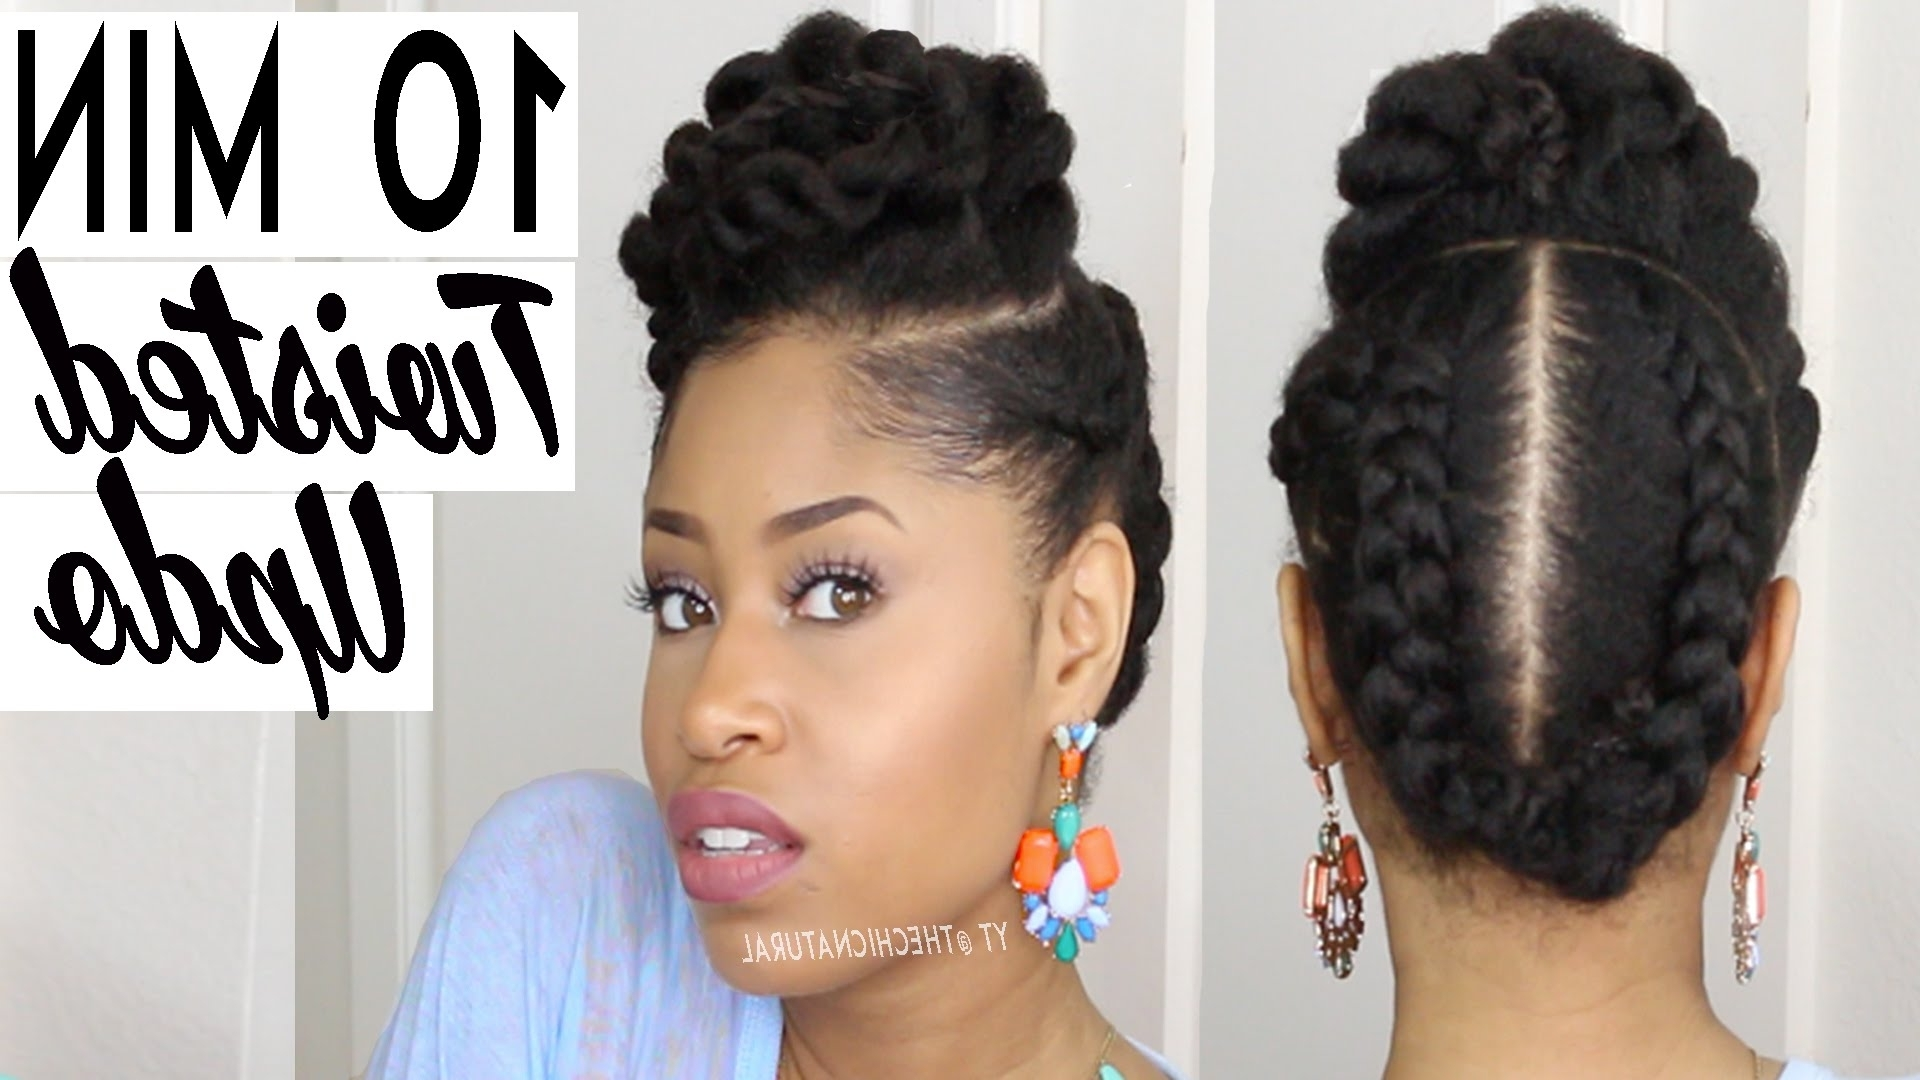 The 10 Minute Twisted Updo | Natural Hairstyle – Youtube For Black Hair Updos For Long Hair (View 13 of 15)